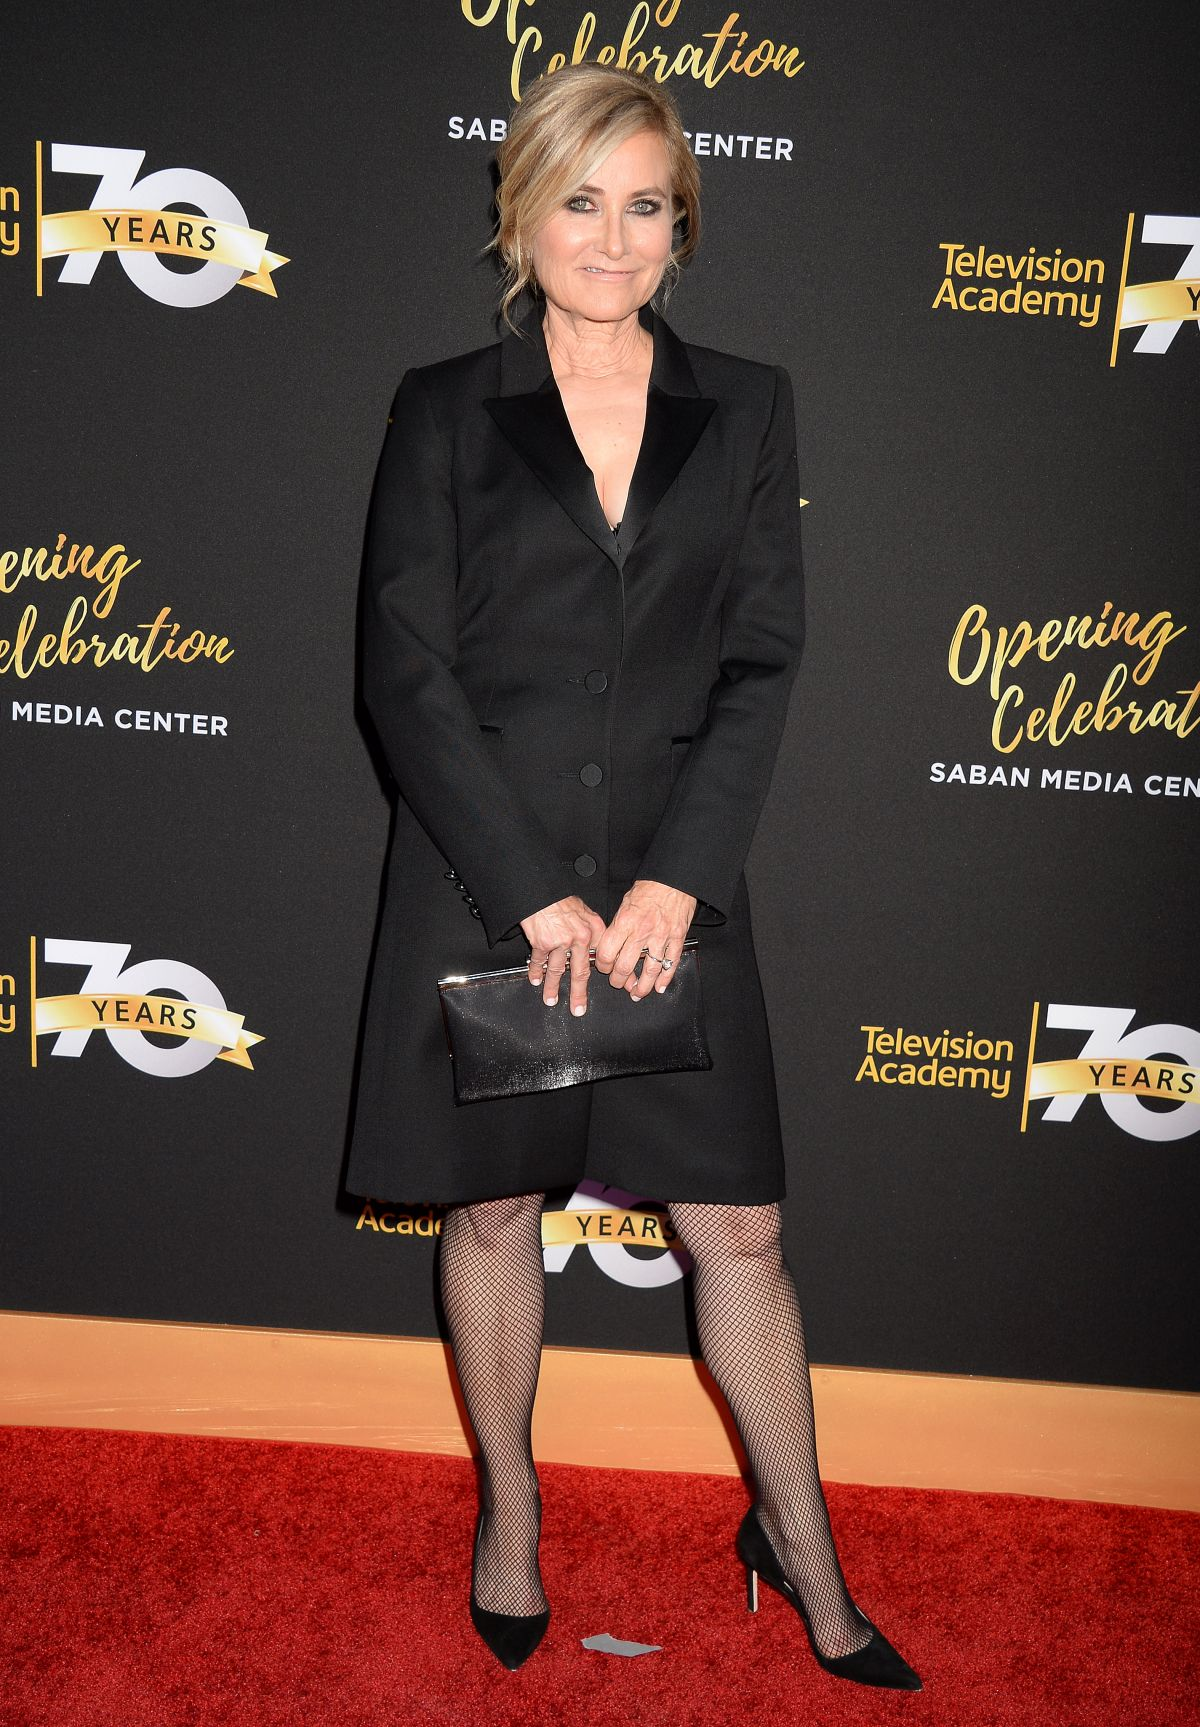 MAUREEN MCCORMICK at Television Academy 70th Anniversary Celebration in Los Angeles 06/02/2016